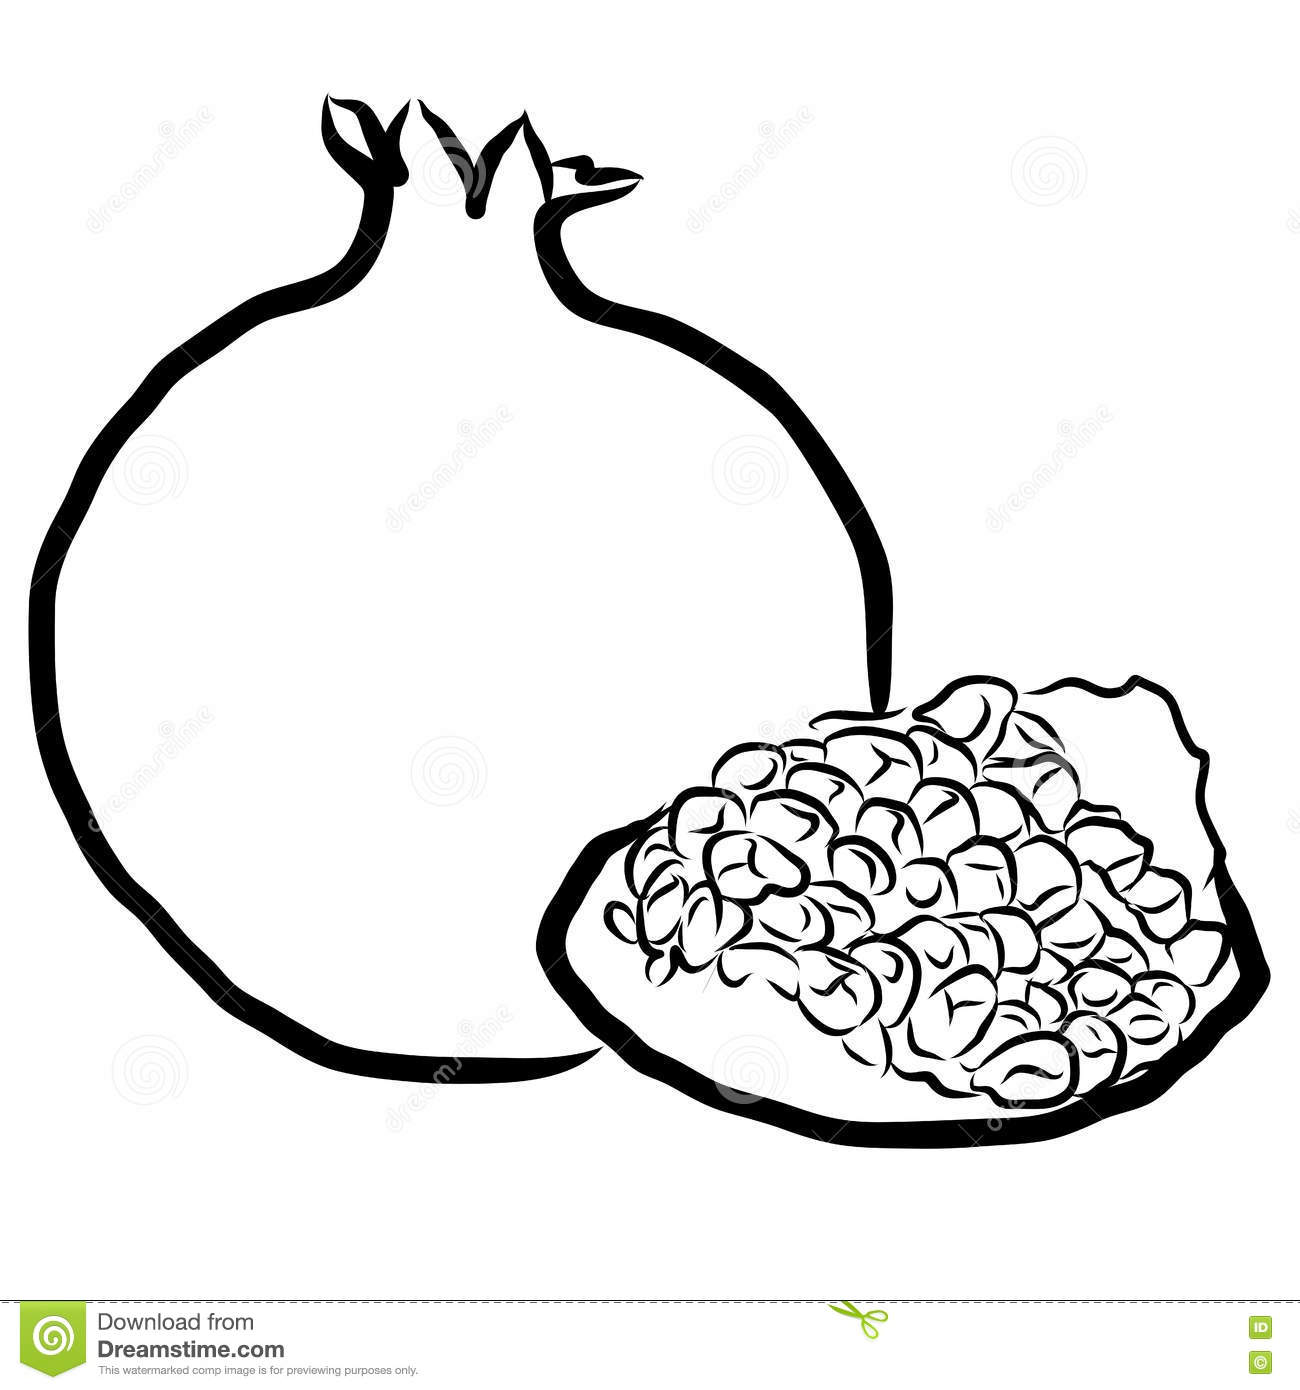 Pomegranate Sketched Outline Vector Illustration Stock